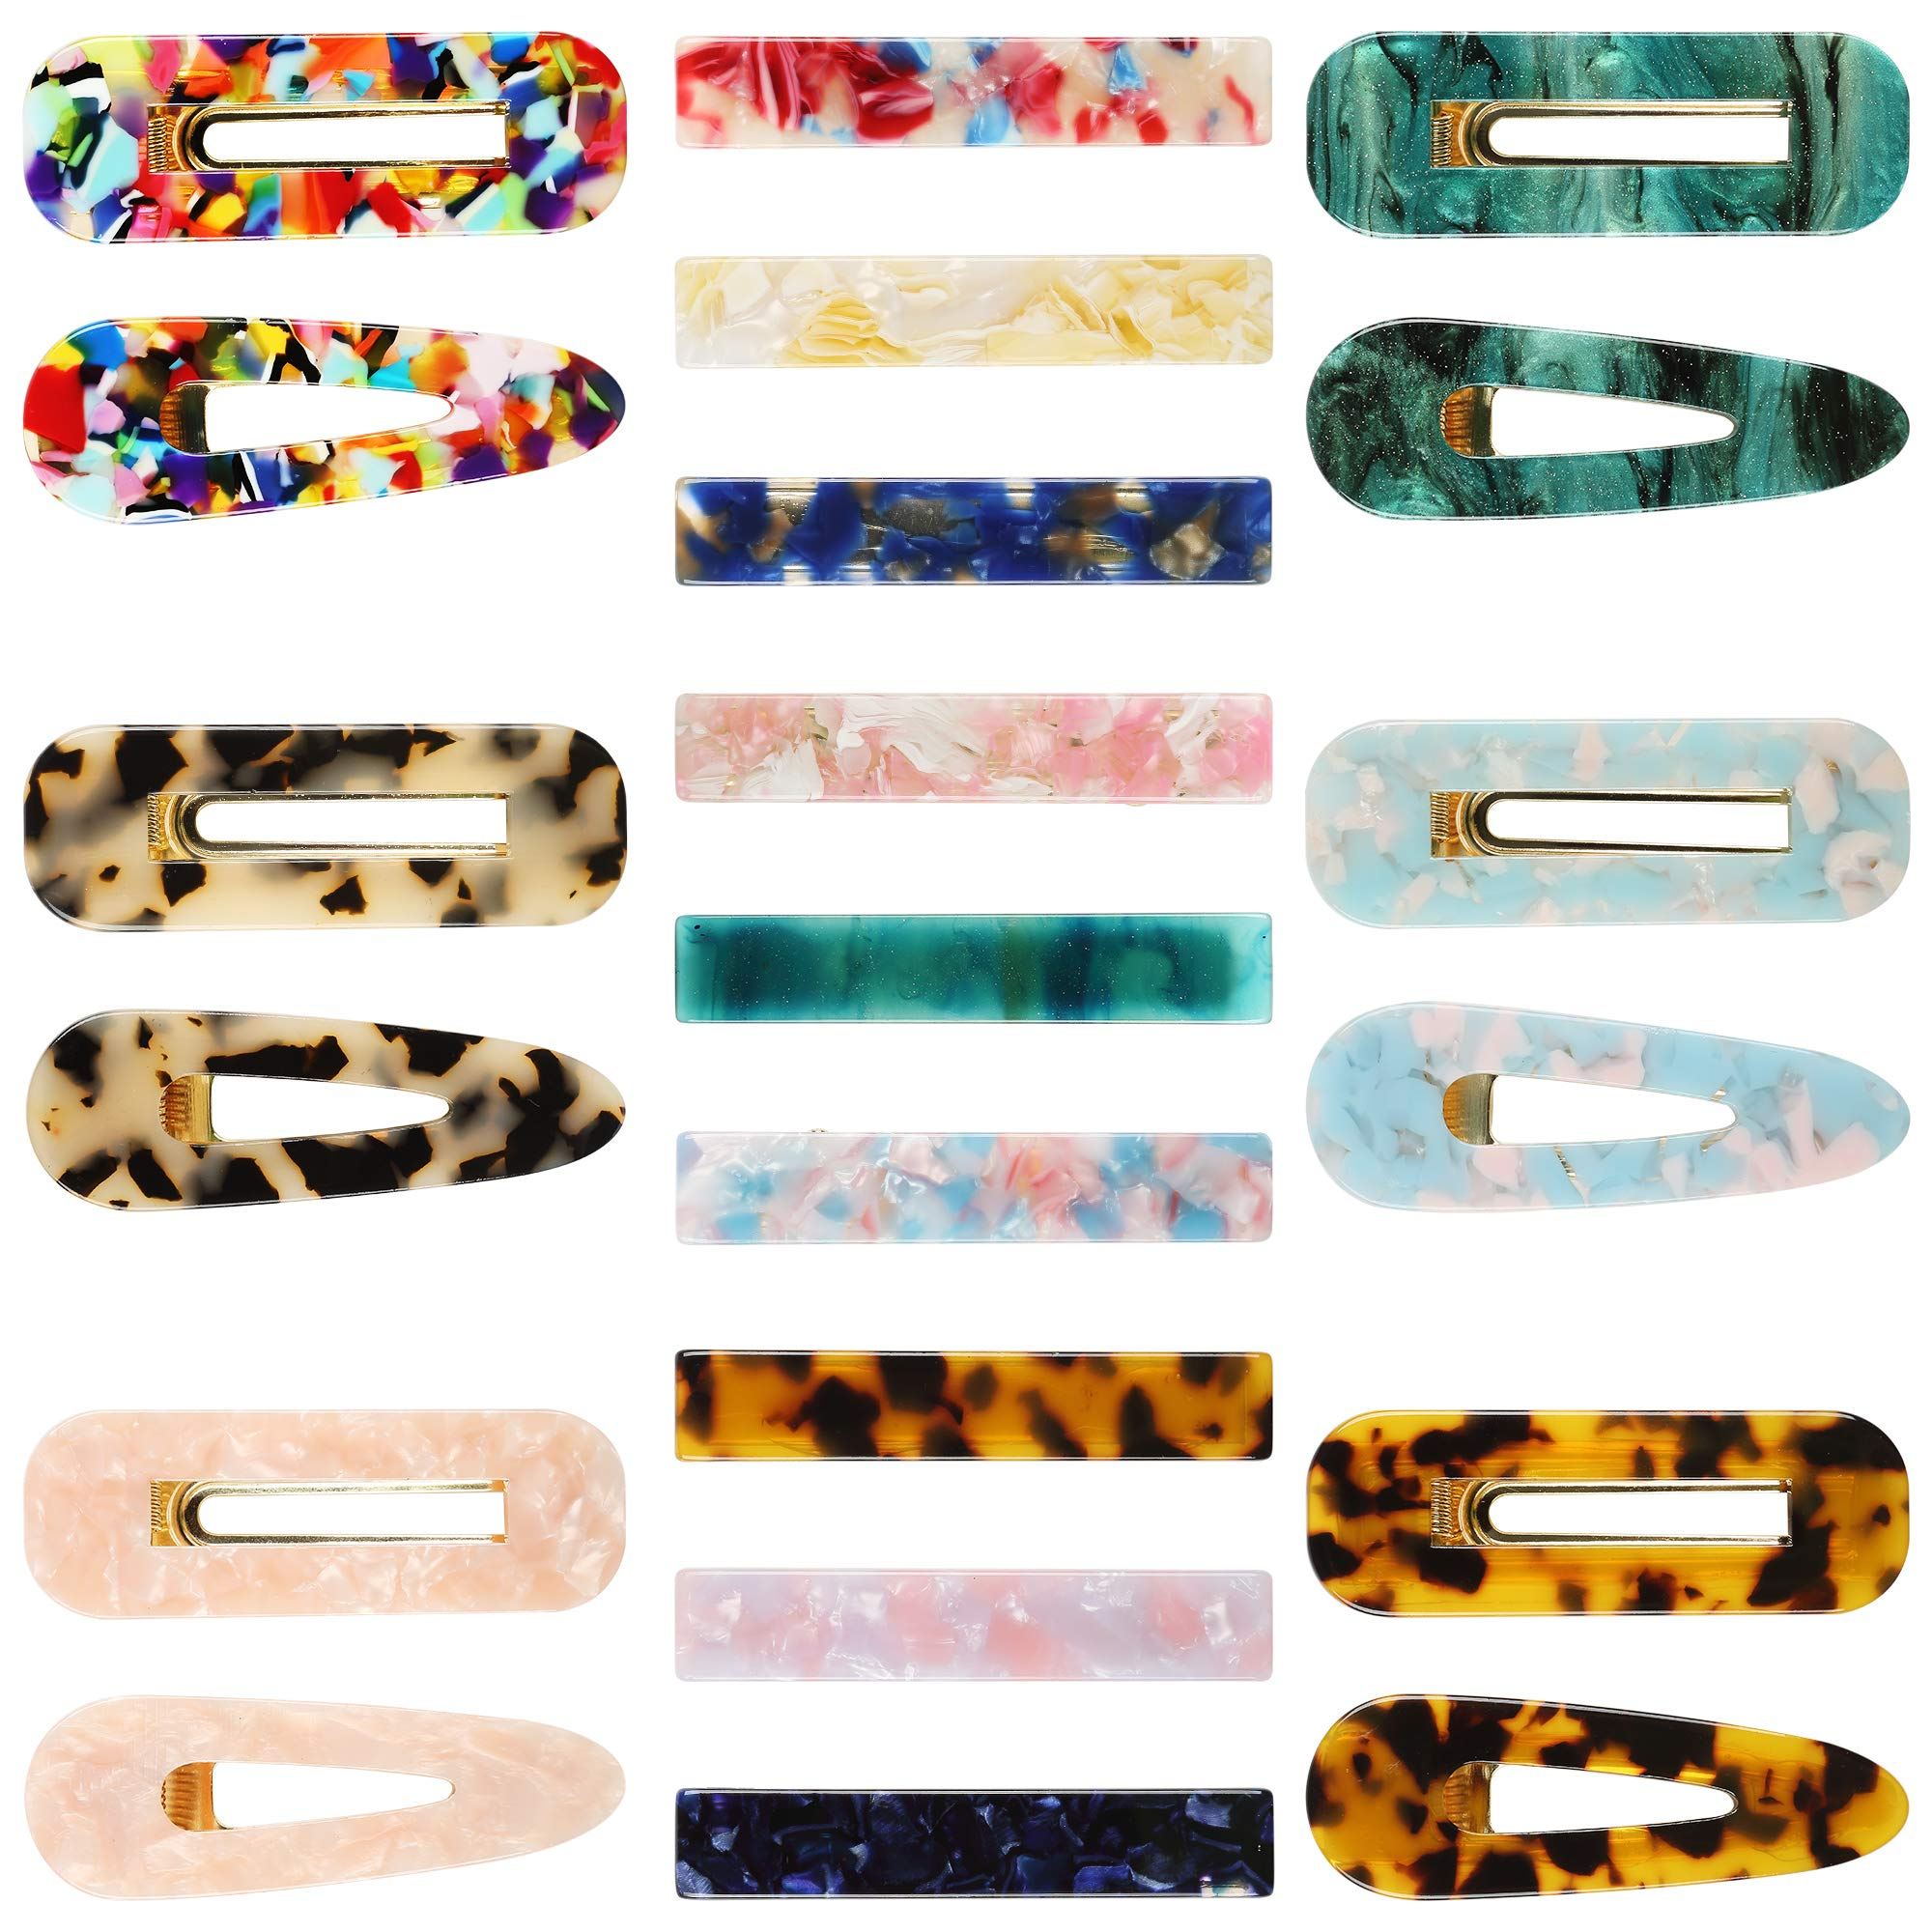 21Pcs Acrylic Resin Hair Clips Set,MASWATER Premium Acrylic Hair Barrettes,Fashion Geometric Marble Rectangle Clips Duckbill Alligator Clips for Women Ladies Hair accessories